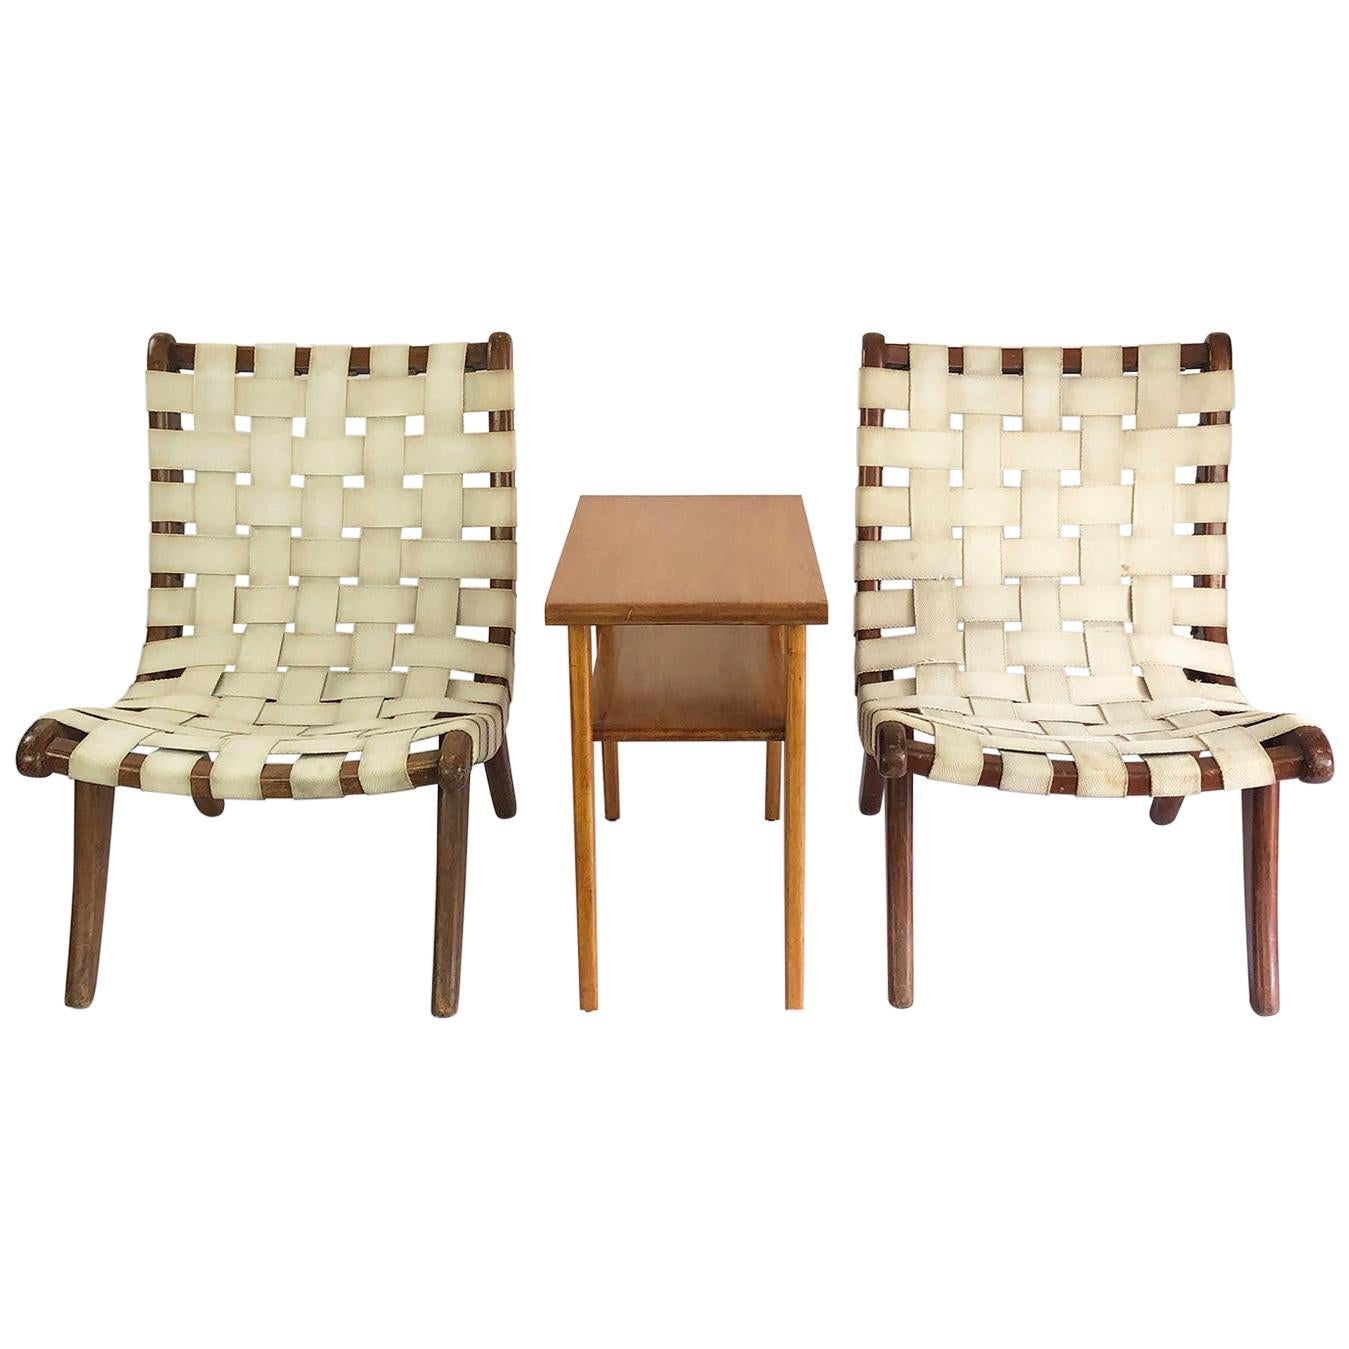 Original Michael Van Beuren Pair of Mexican San Miguelito Easy Chairs and Table